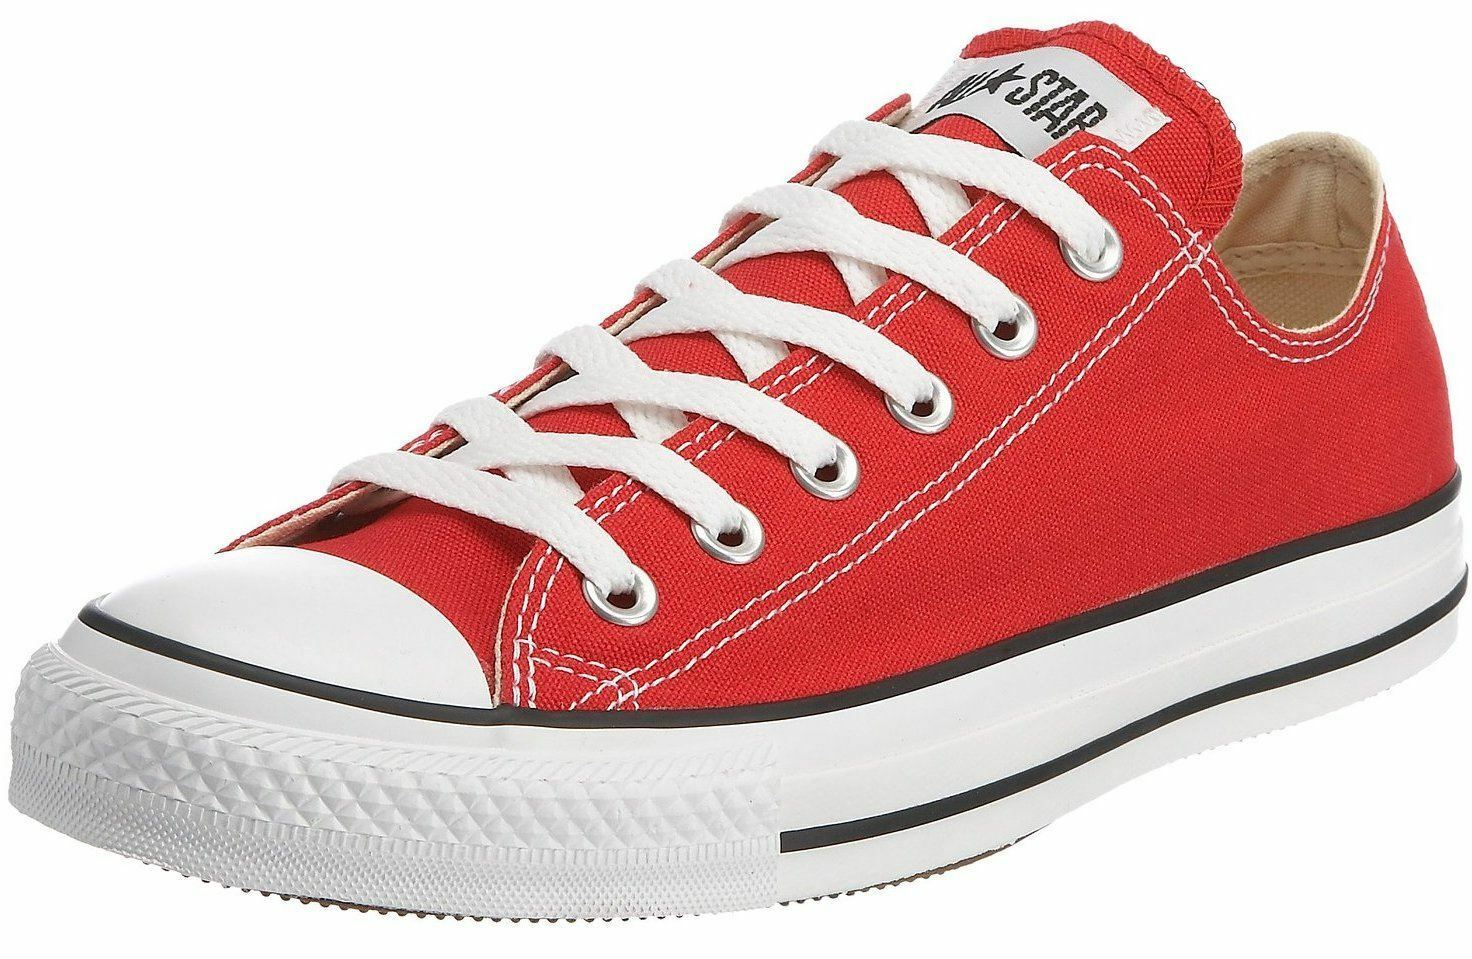 Converse Chuck Taylor All Star Red White Lo Unisex Trainers Boots